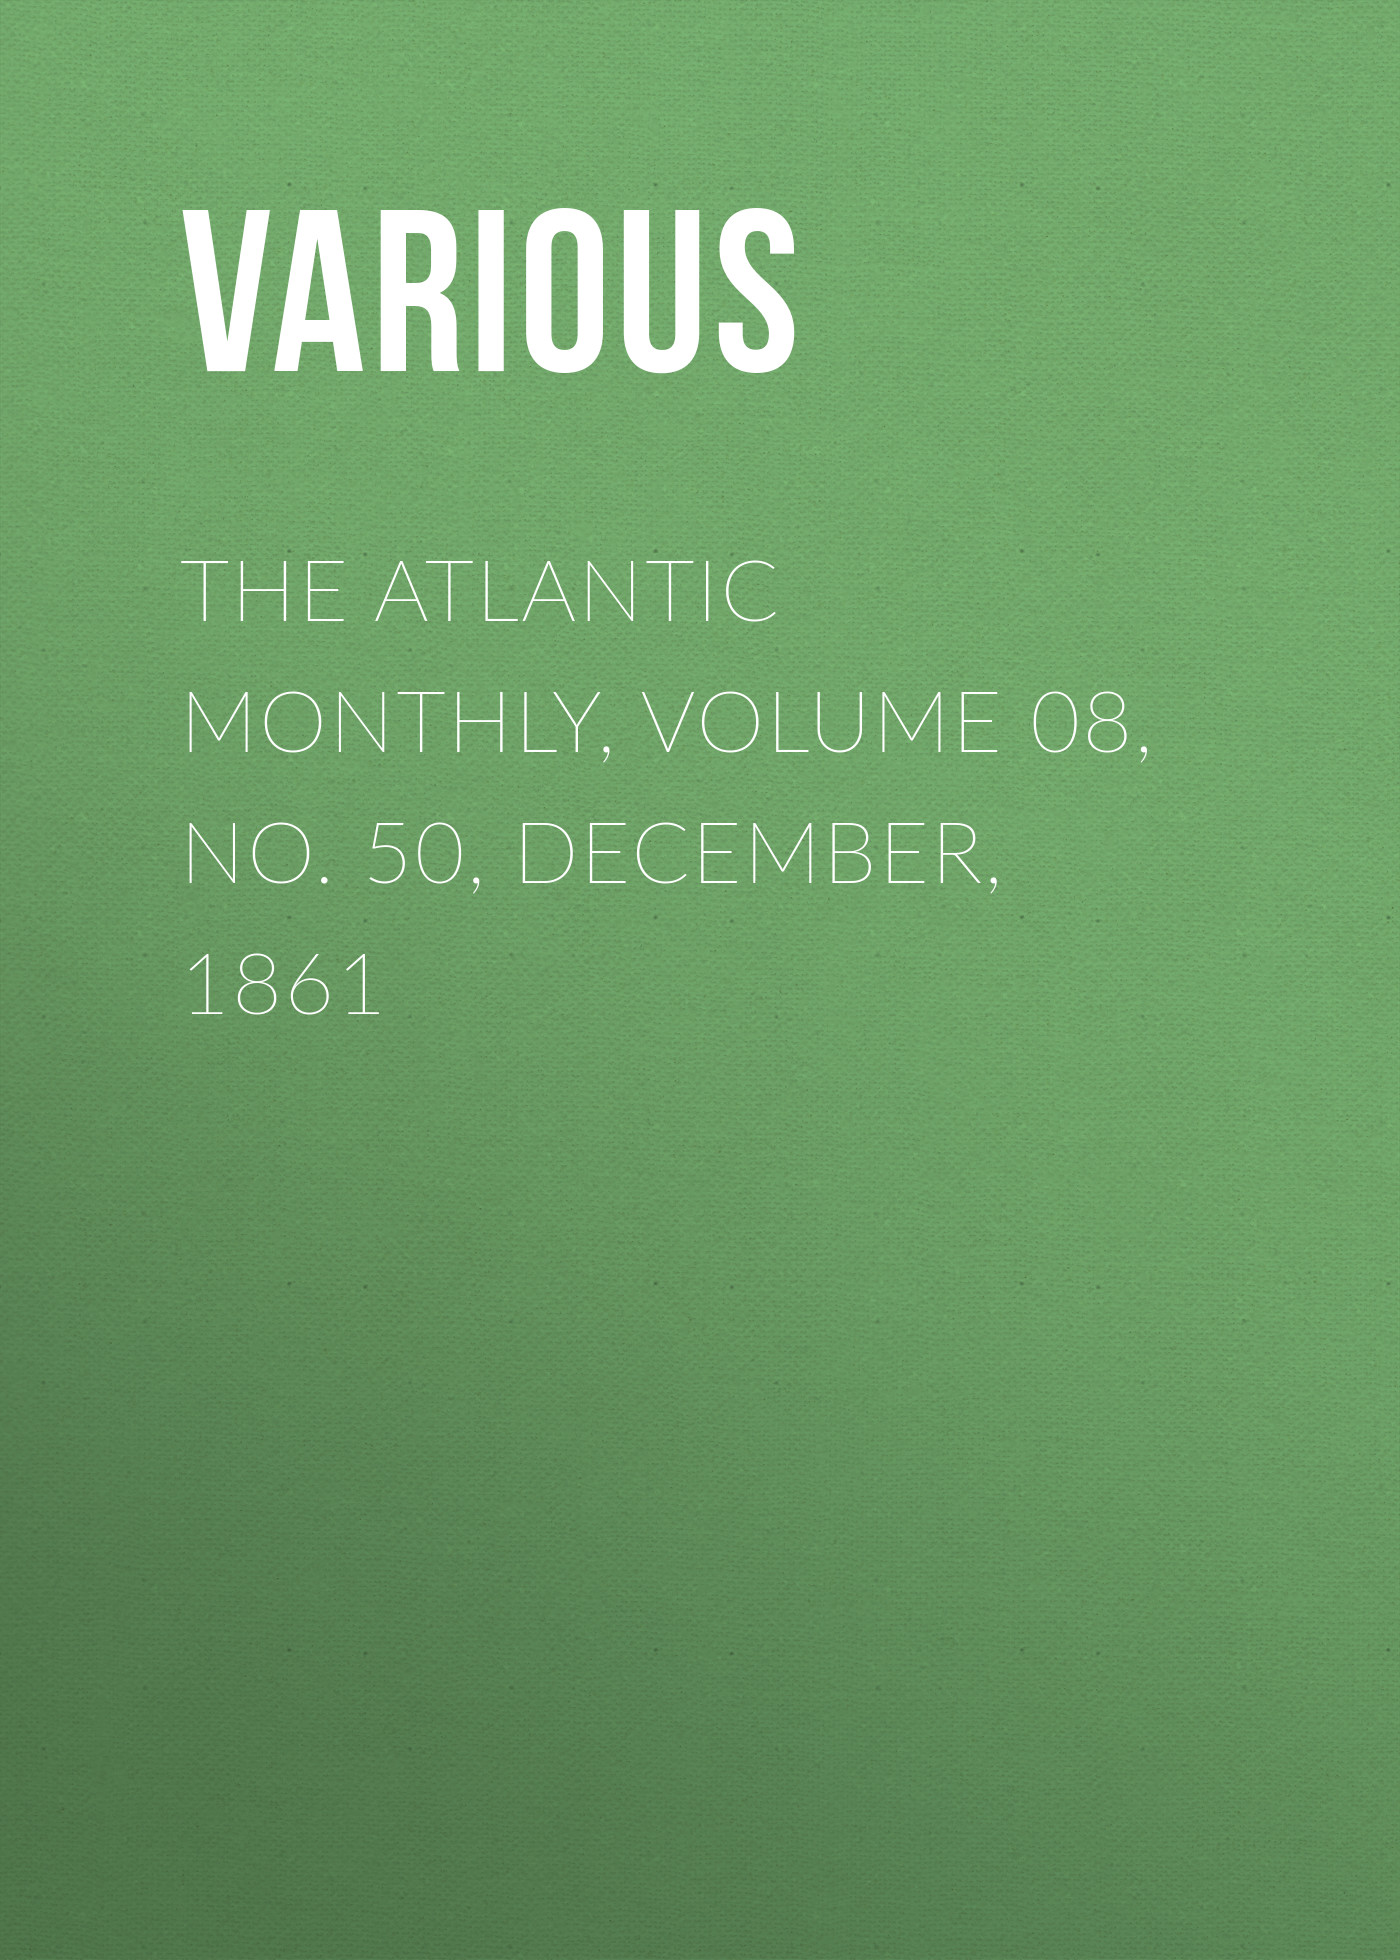 Various The Atlantic Monthly, Volume 08, No. 50, December, 1861 various the atlantic monthly volume 10 no 62 december 1862